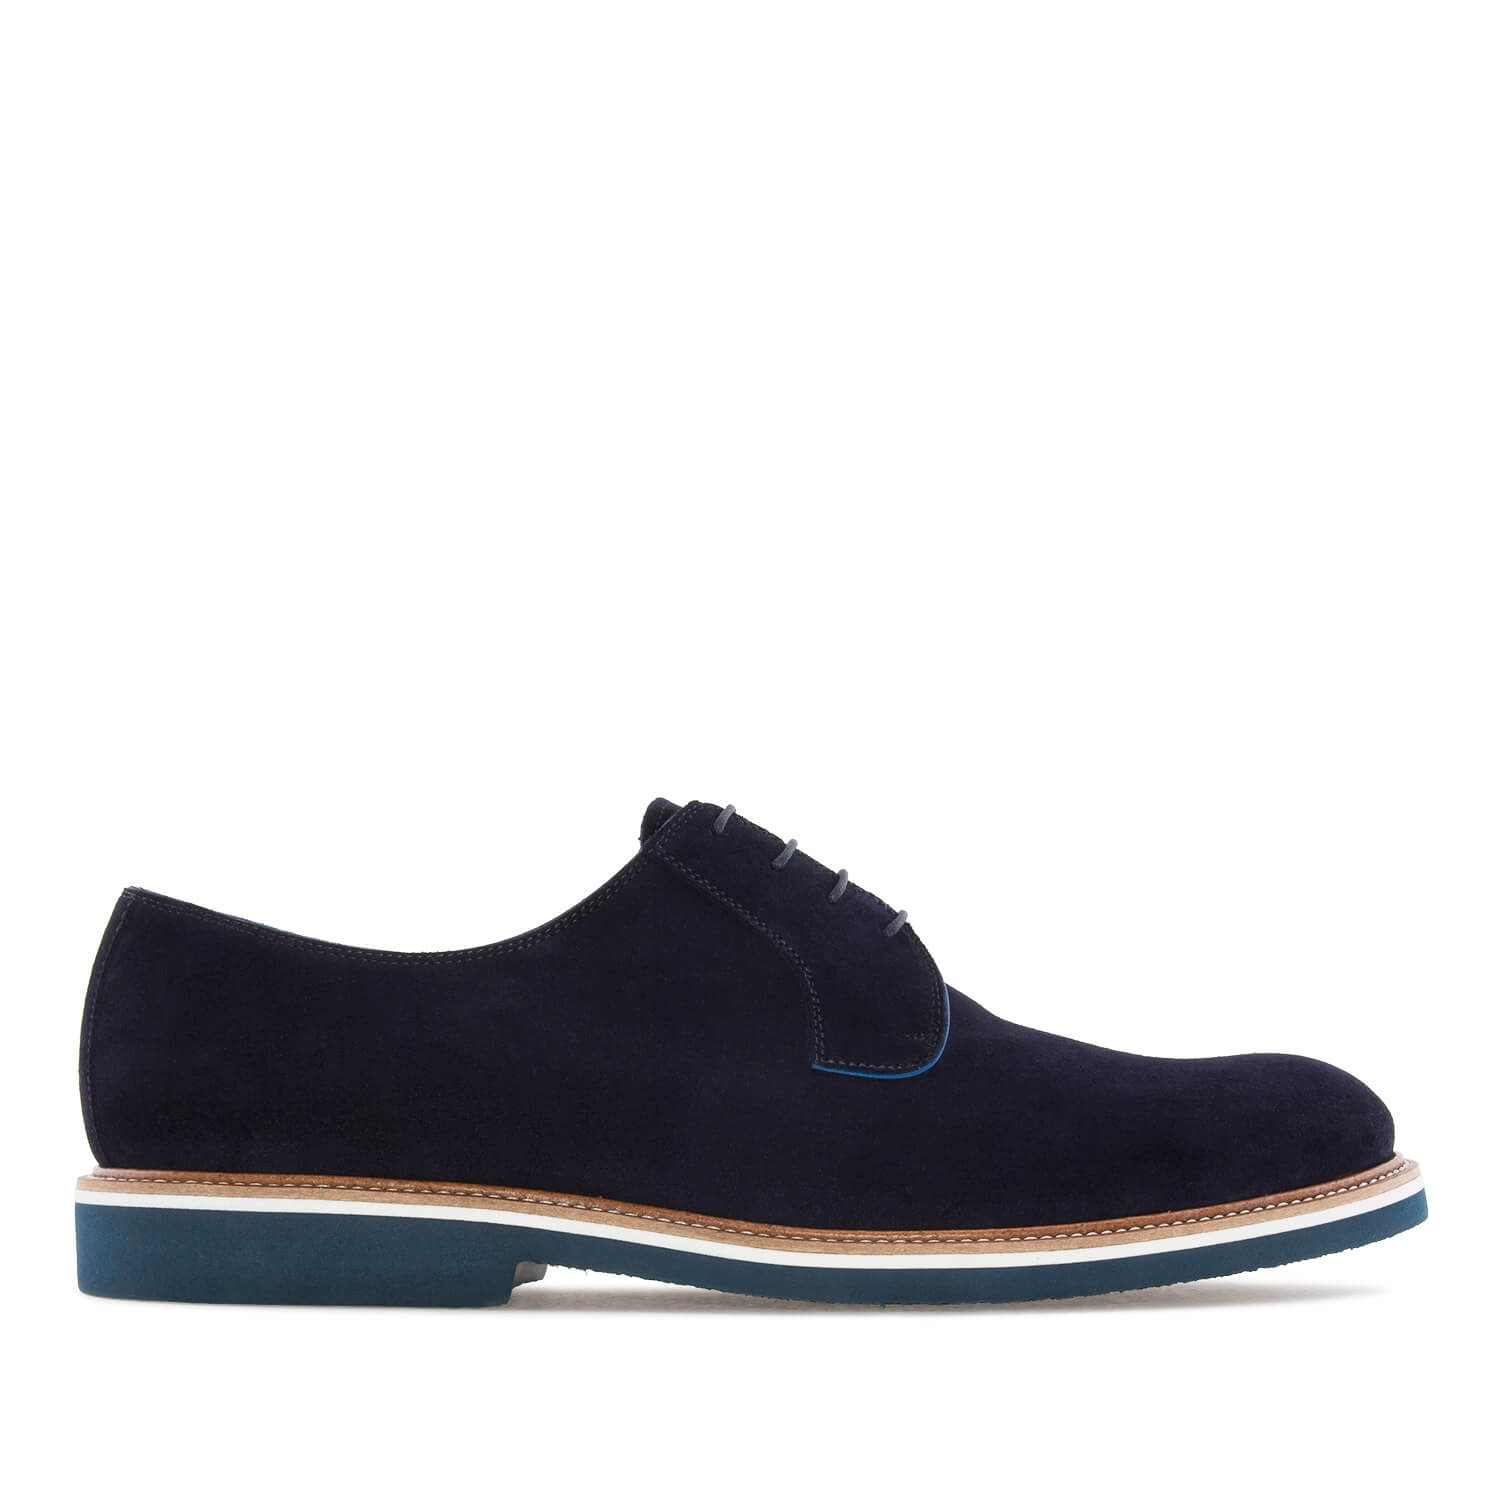 Zapatos Oxford Serraje Azul